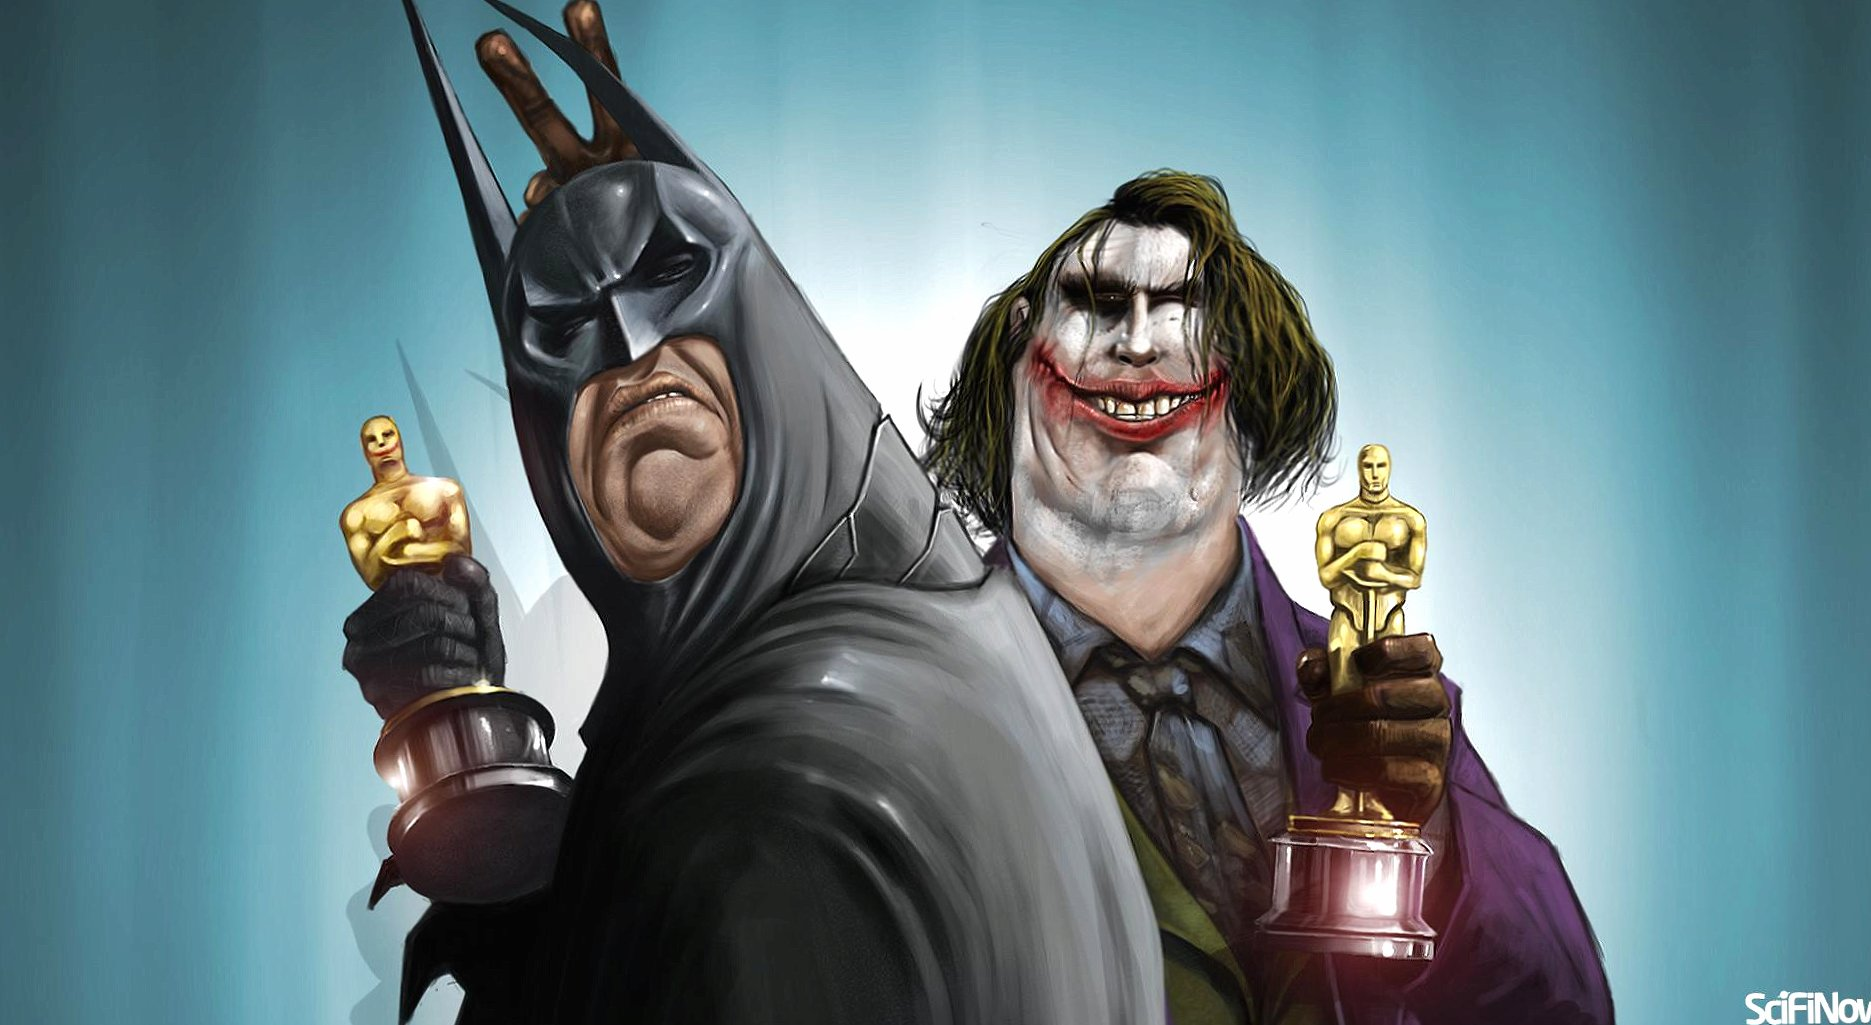 Funny joker and batman fat and old wallpapers HD quality